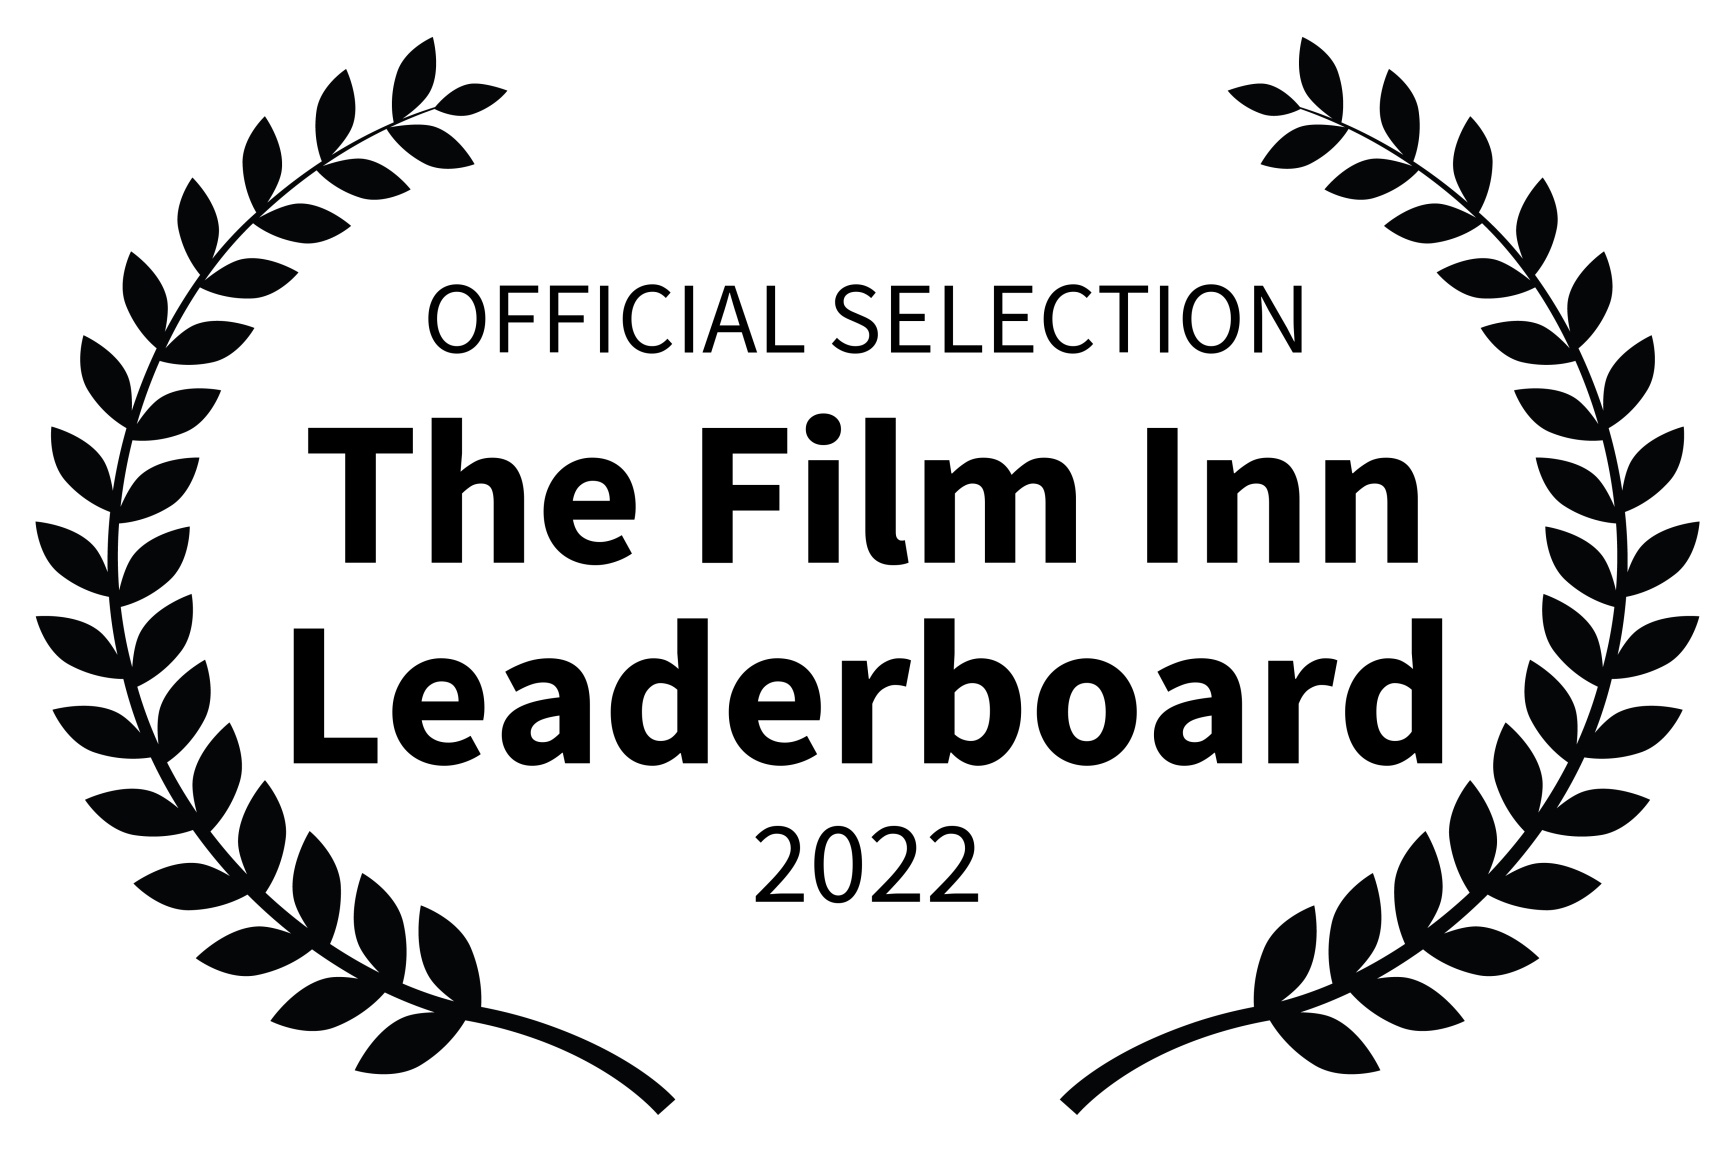 Official Selection, The Film Inn Leaderboard